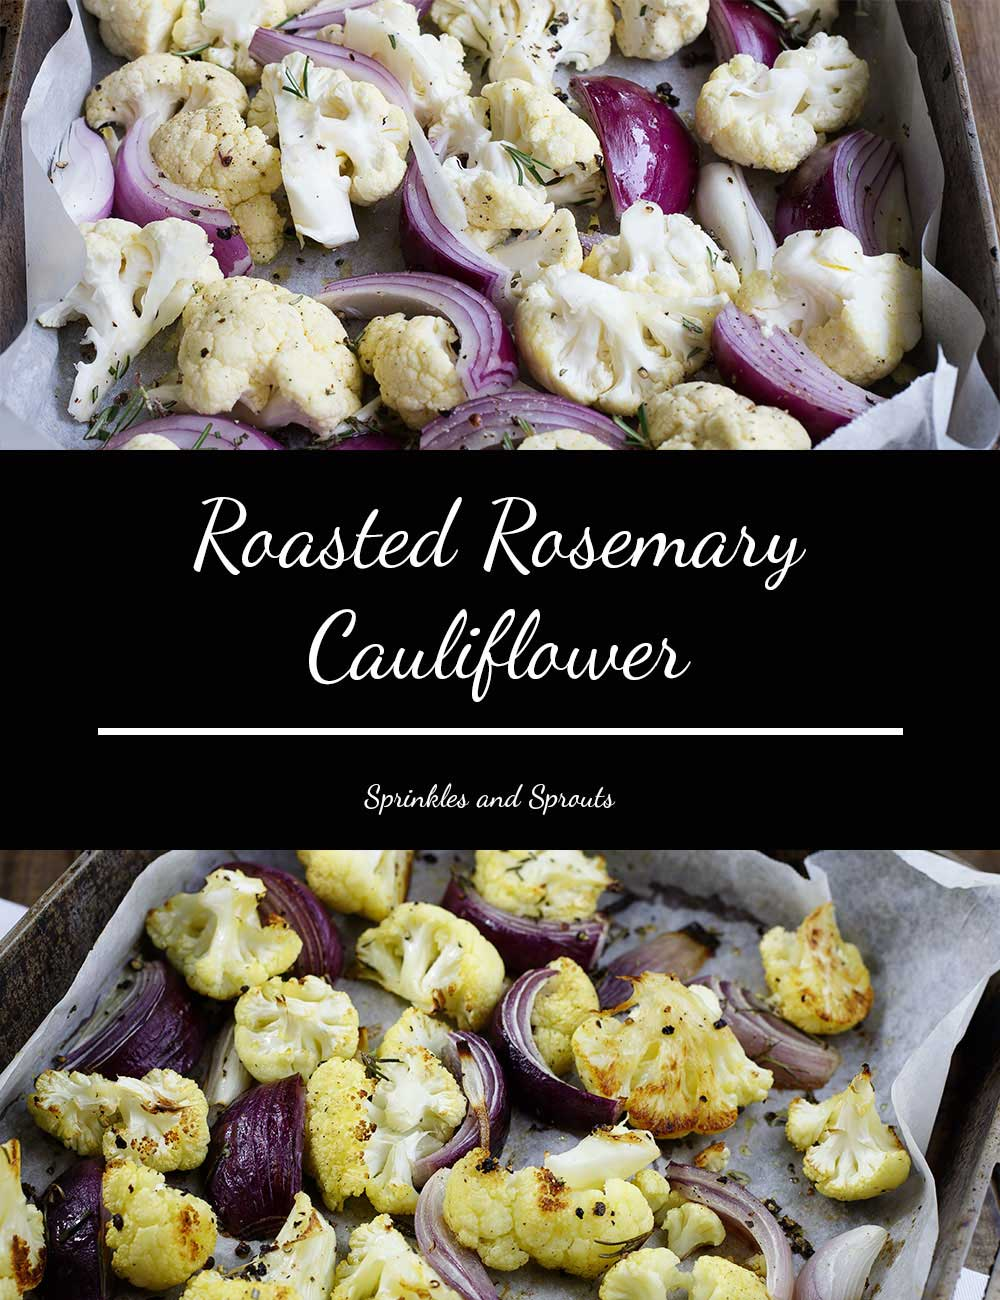 Roasted Rosemary Cauliflower. A simple, delicious and versatile side dish. This roasted cauliflower is perfect with a roast or with a pan fried steak.